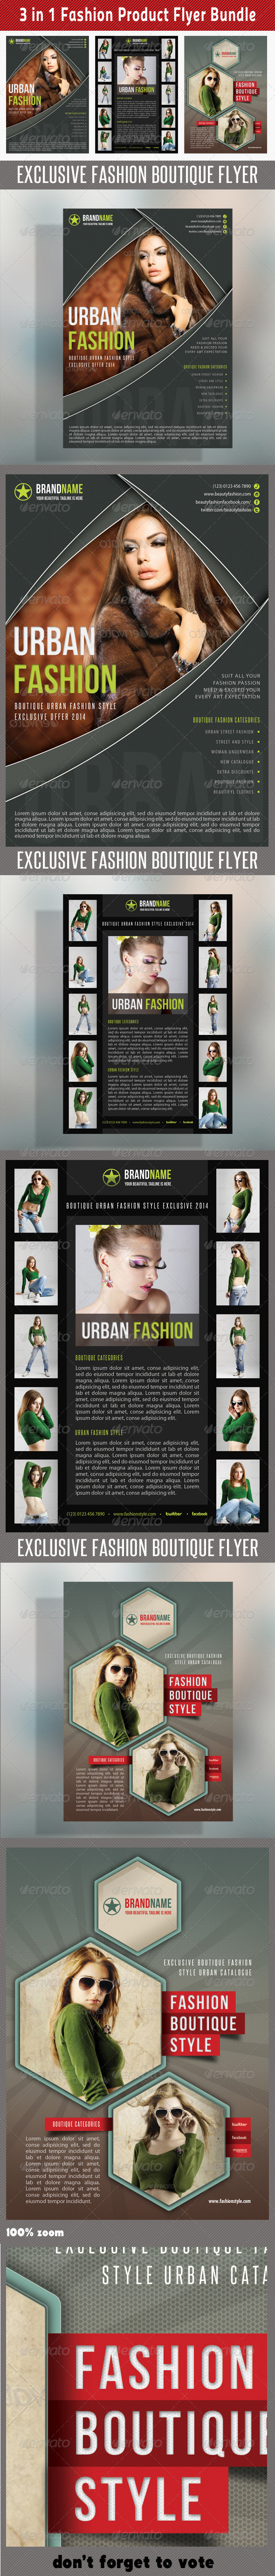 GraphicRiver 3 in 1 Fashion Product Flyer Bundle 12 6757912